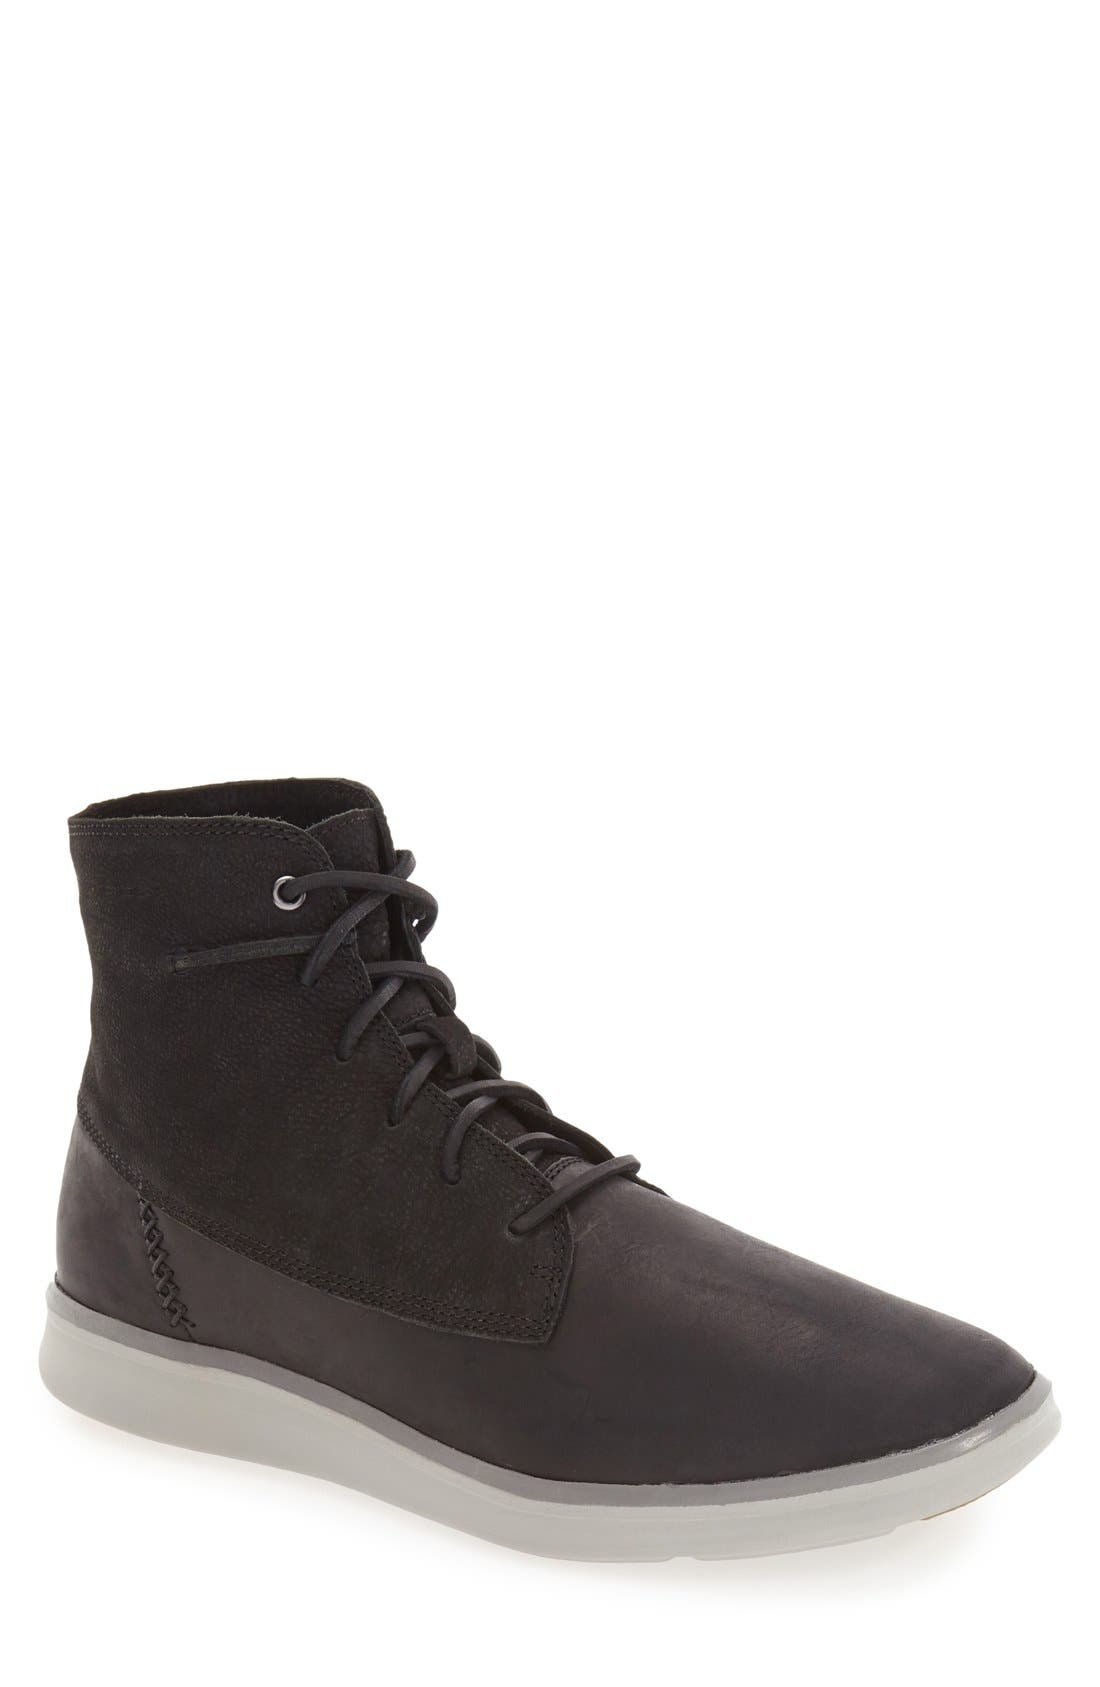 'Lamont' High Top Sneaker,                         Main,                         color,